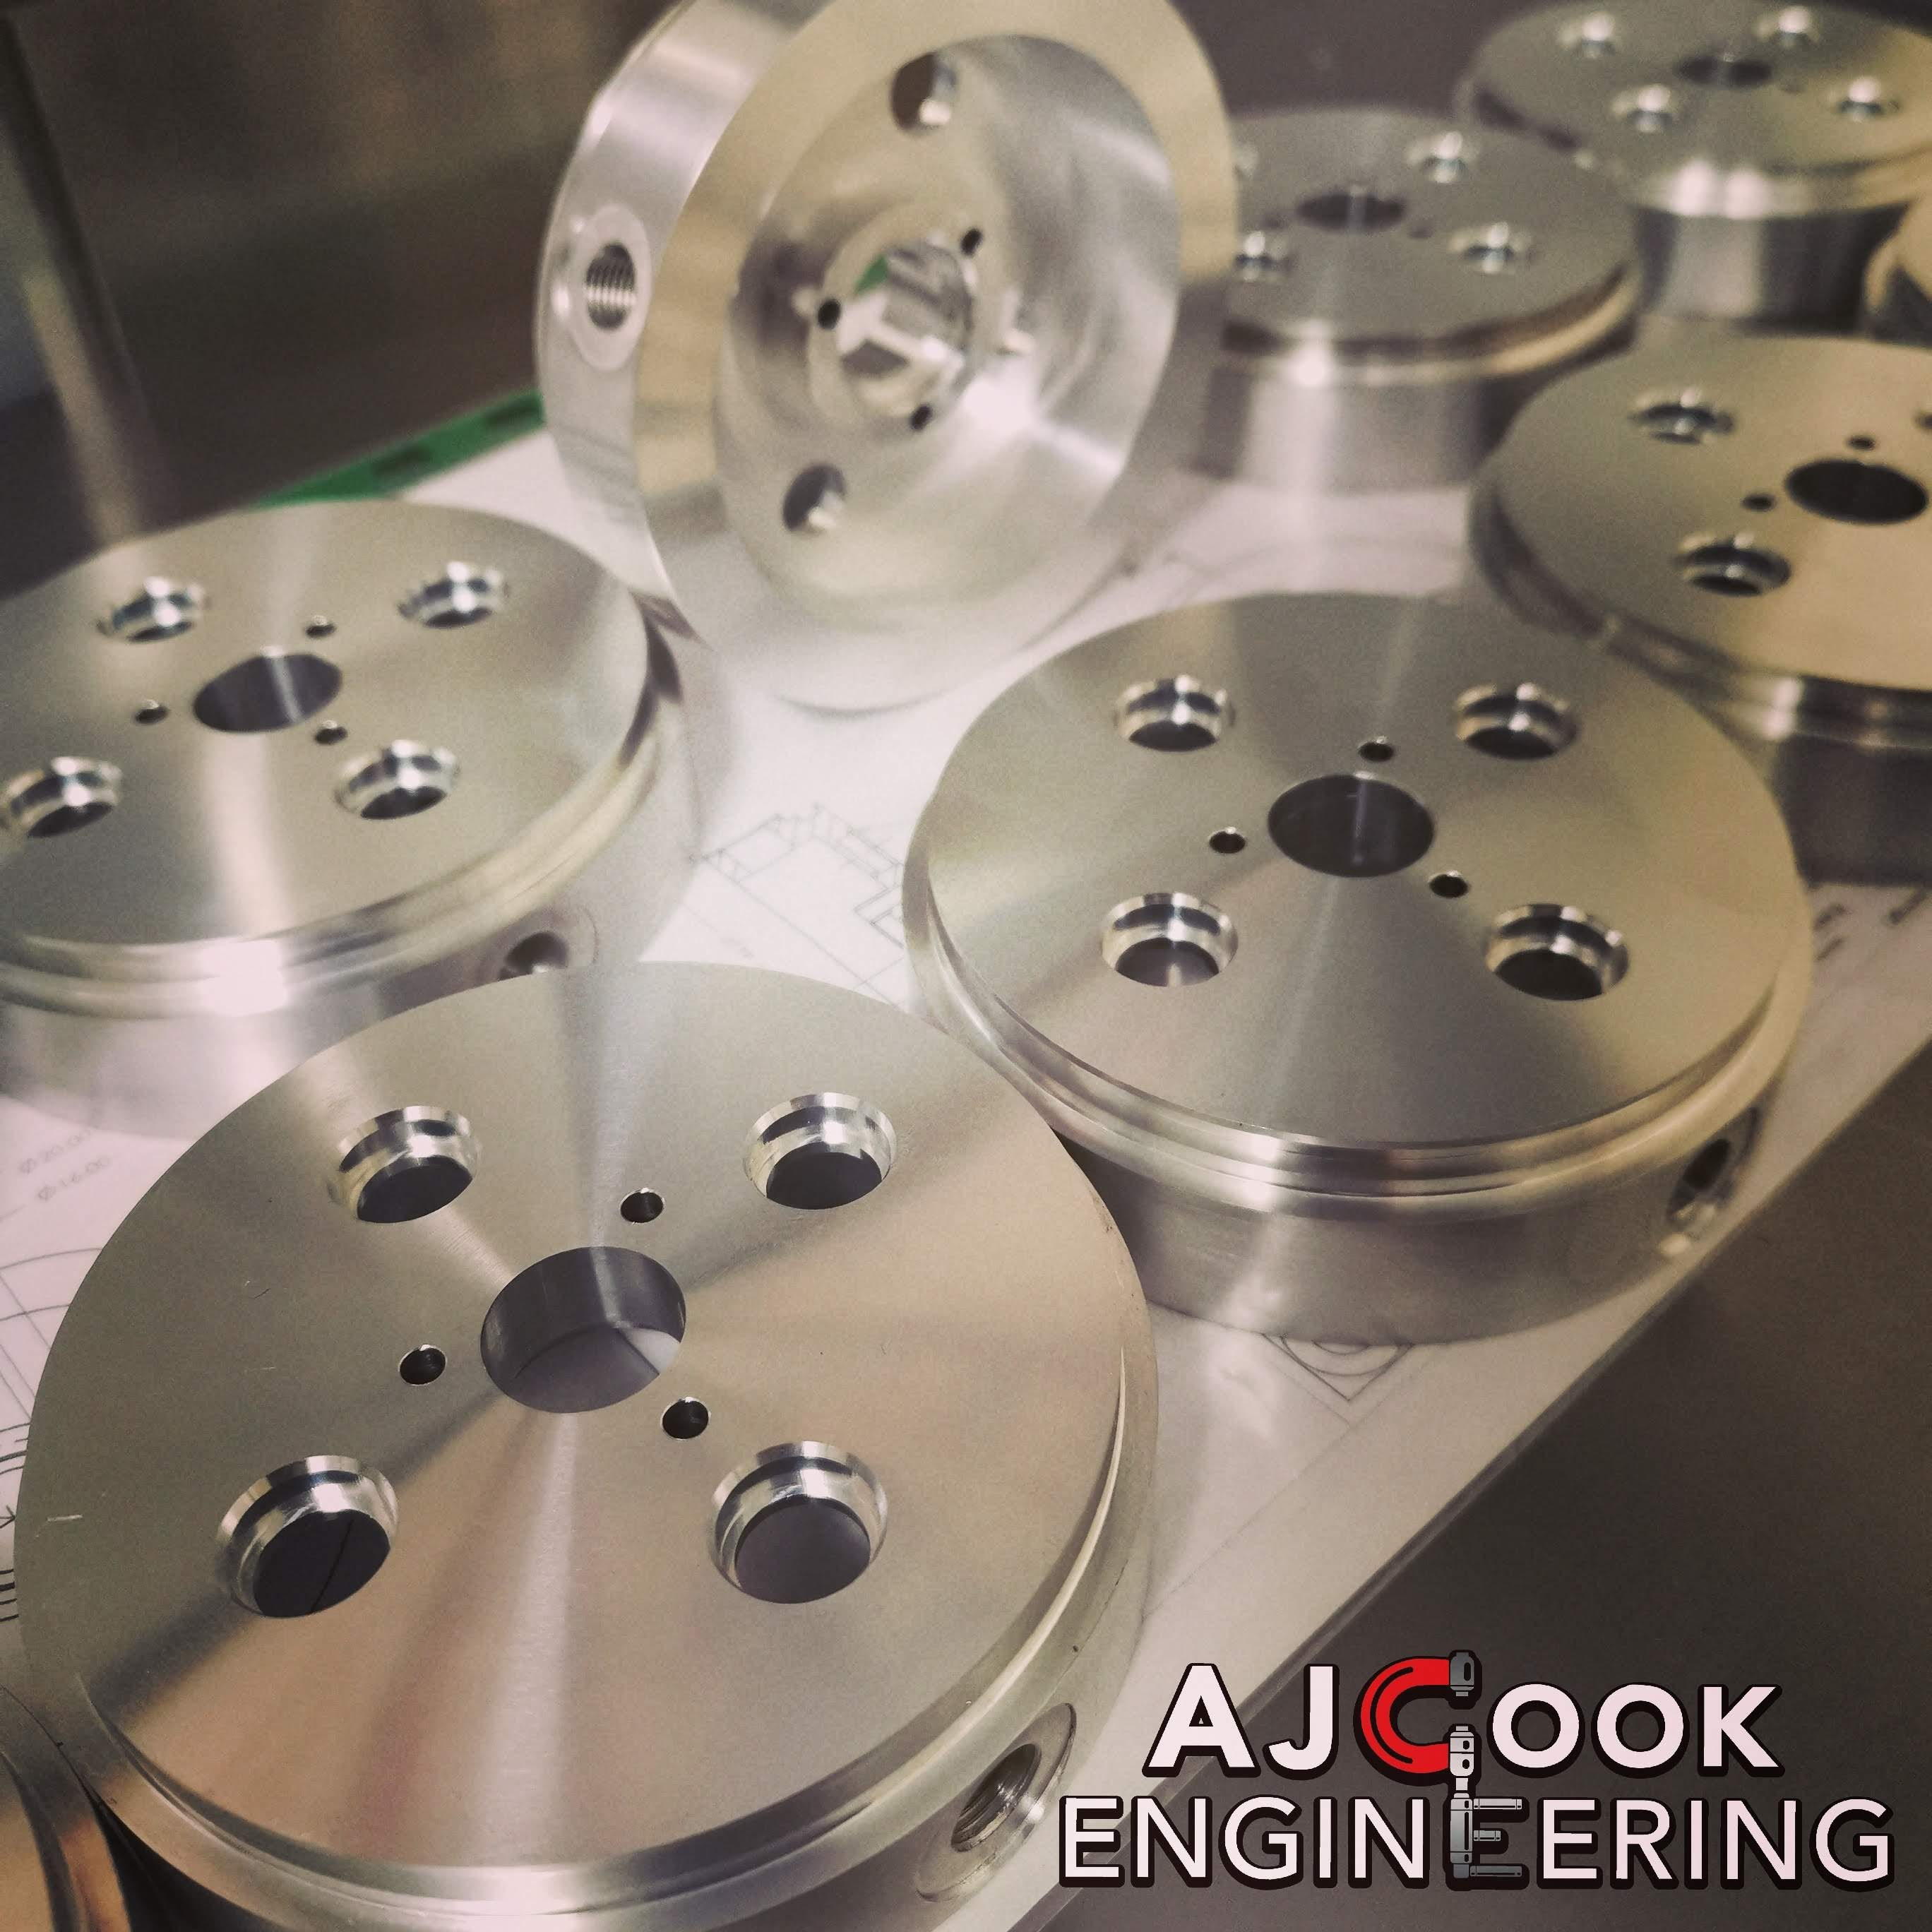 A J Cook Engineering CNC Machining Cambridgeshire Aluminium